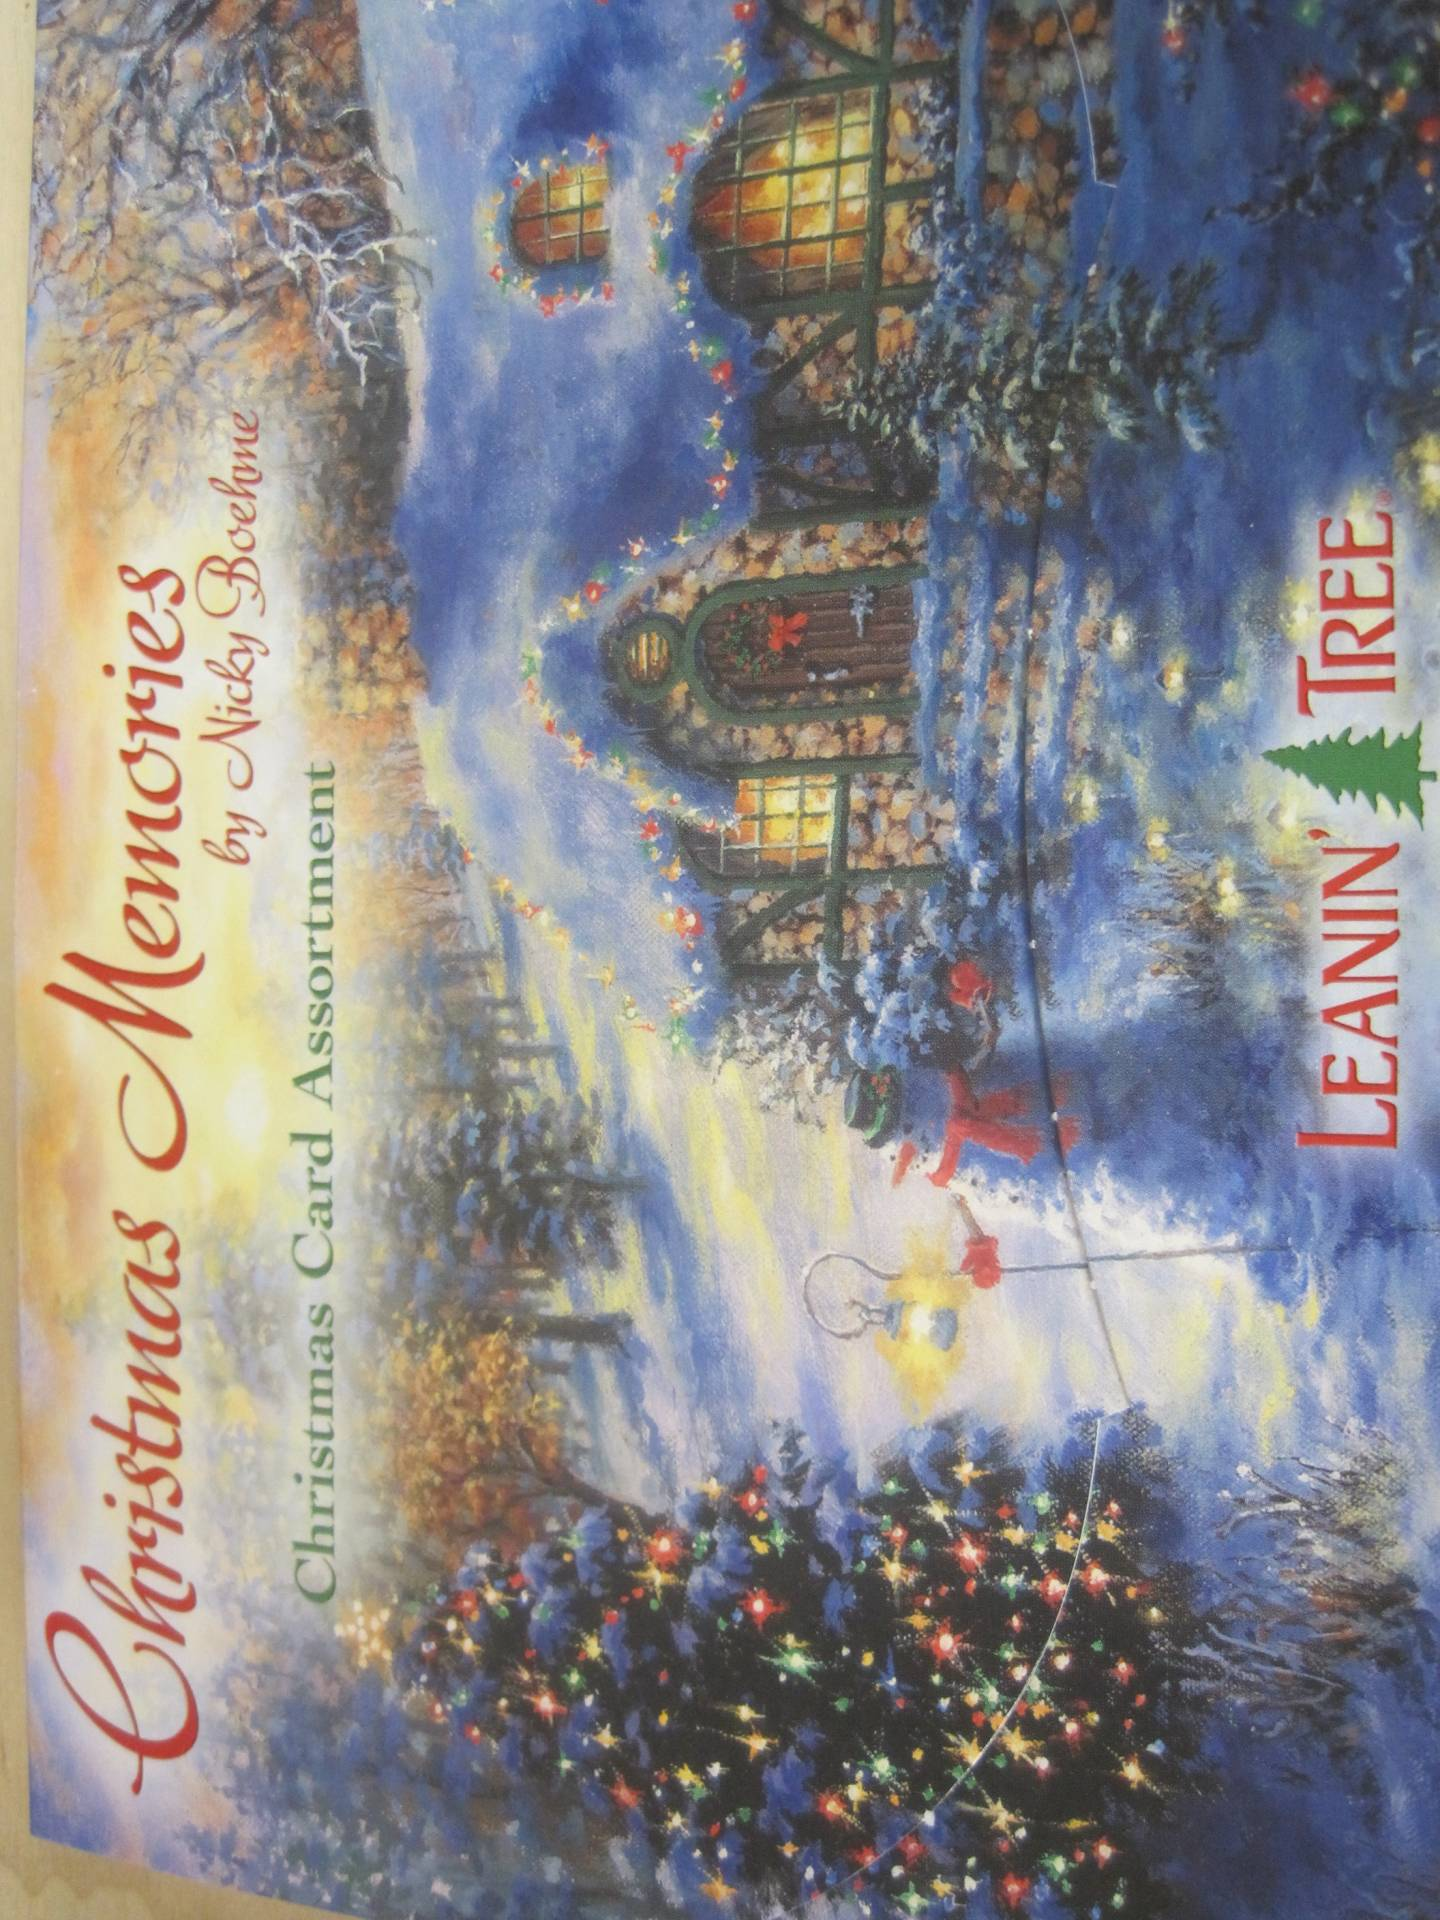 2016 Leanin\' Tree Christmas Cards Sets Are Here - Candies of Merritt